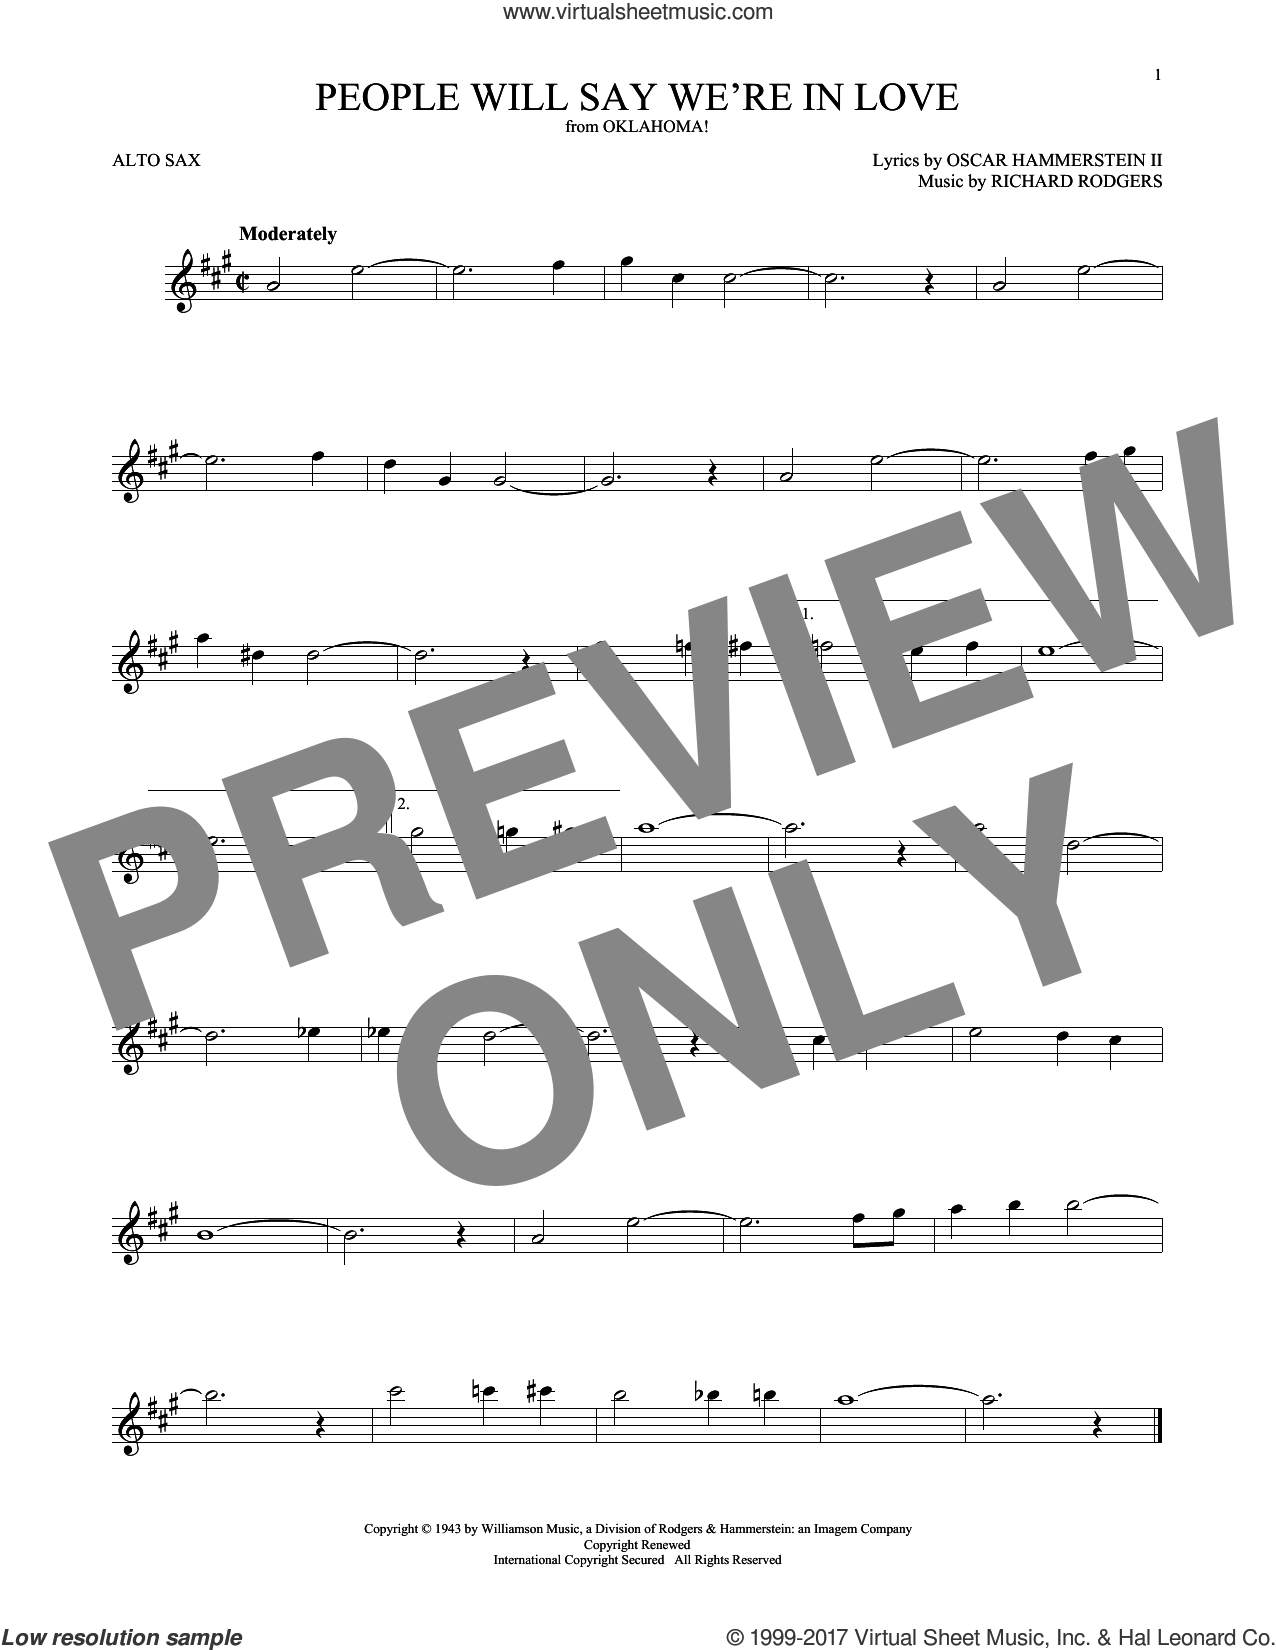 People Will Say We're In Love (from Oklahoma!) sheet music for alto saxophone solo by Rodgers & Hammerstein, Oscar II Hammerstein and Richard Rodgers, intermediate skill level